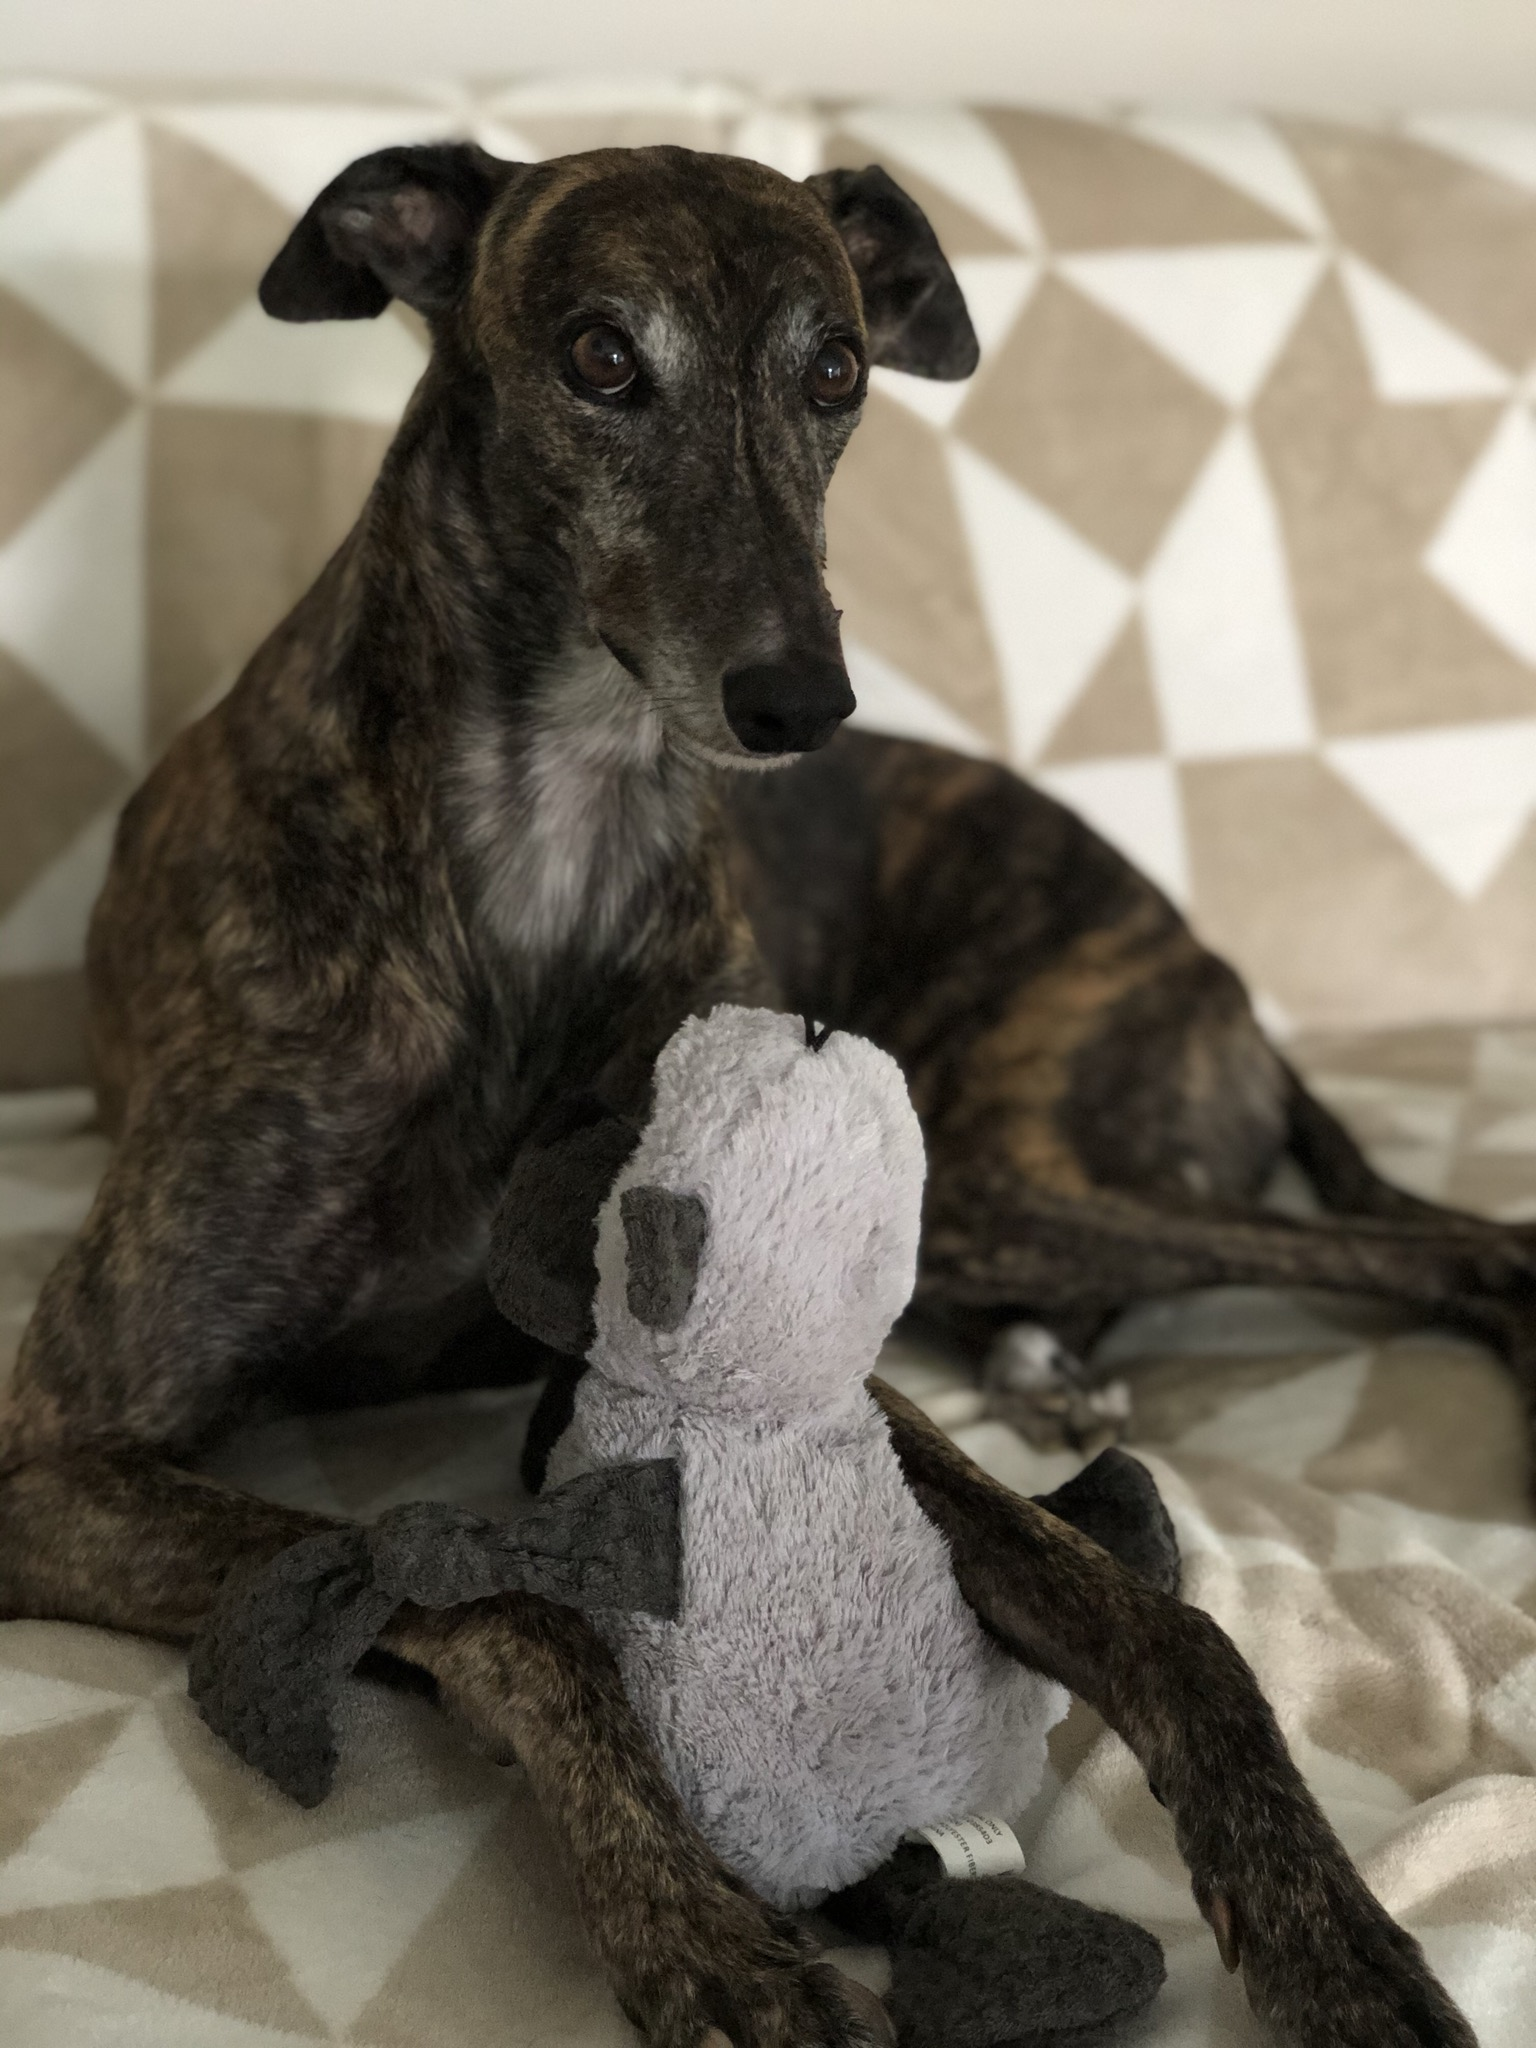 Daisy the brindle greyhound sits on the couch playing with a toy